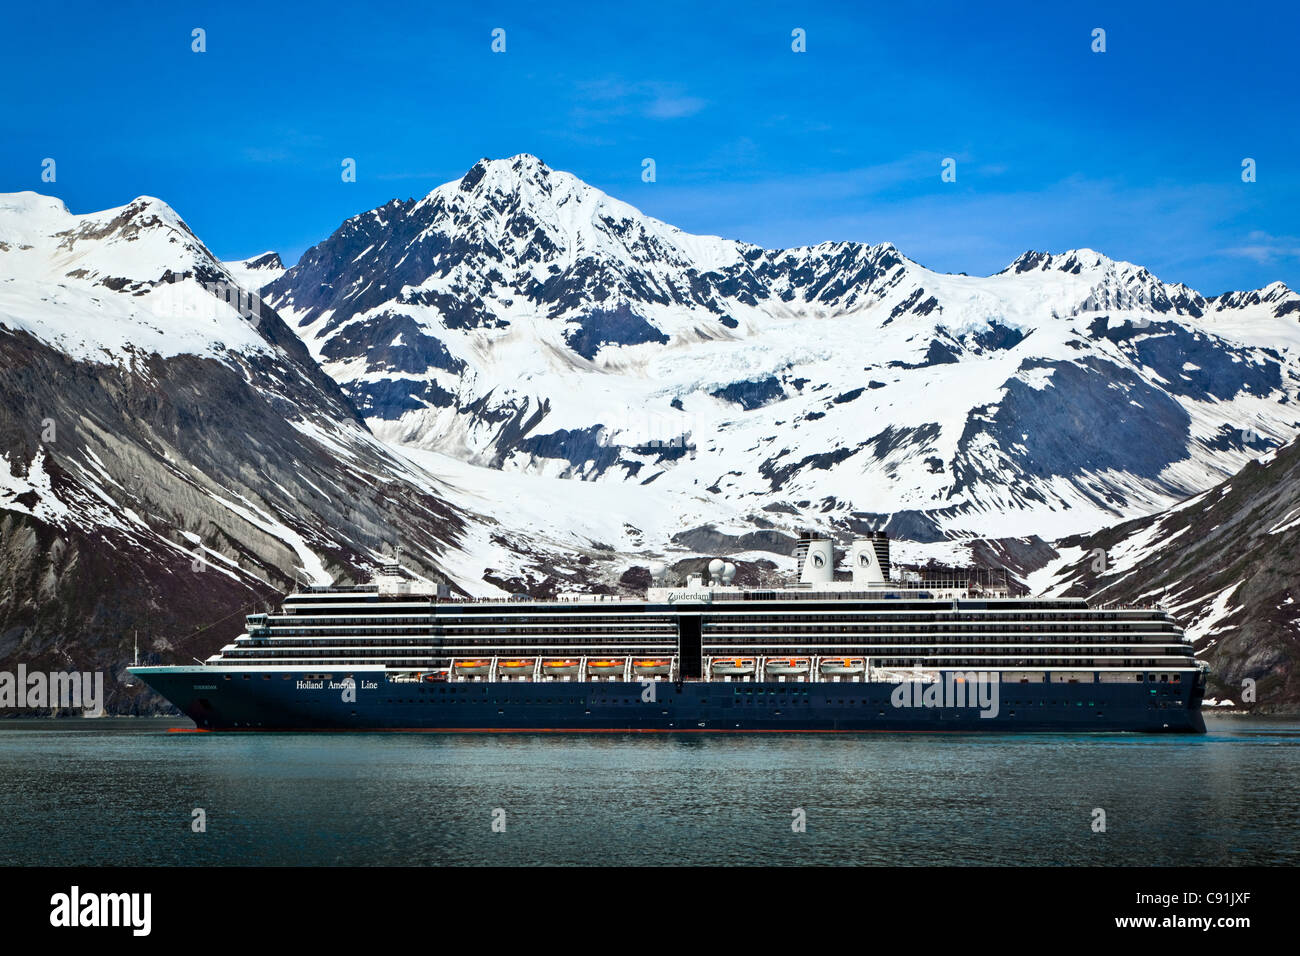 Holland America cruise Schiff auf Johns Hopkins Gletscher, Glacier Bay Nationalpark, Alaska Stockbild